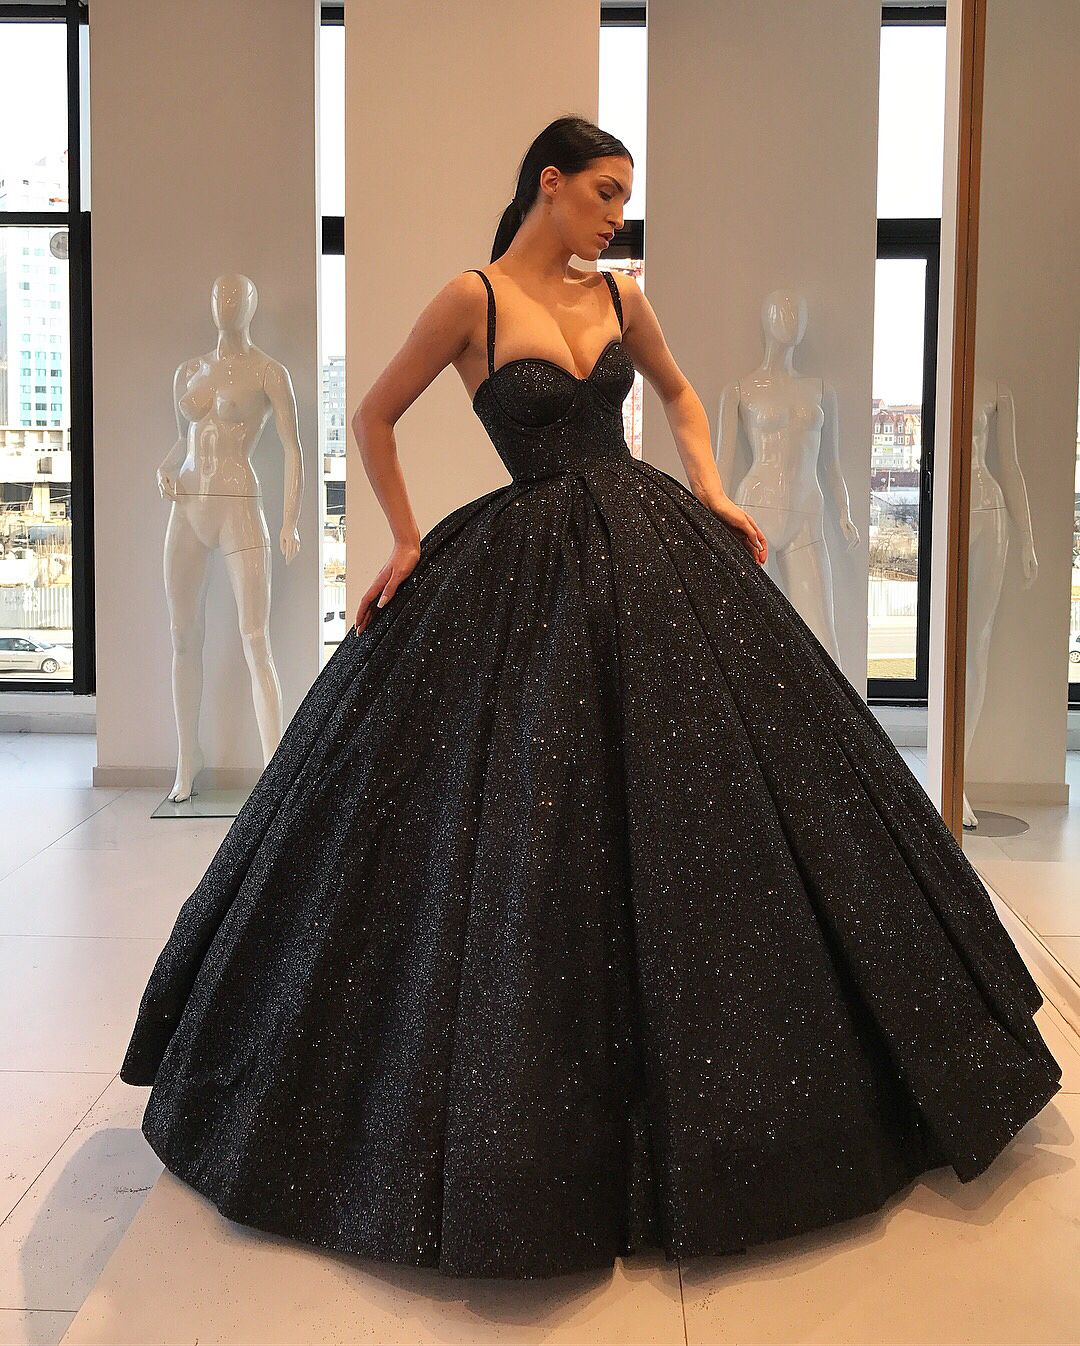 cc1b7e8b994 LS Dress by  liastubllaofficial  liastublla. LS Dress by   liastubllaofficial  liastublla Black Ball Gowns ...